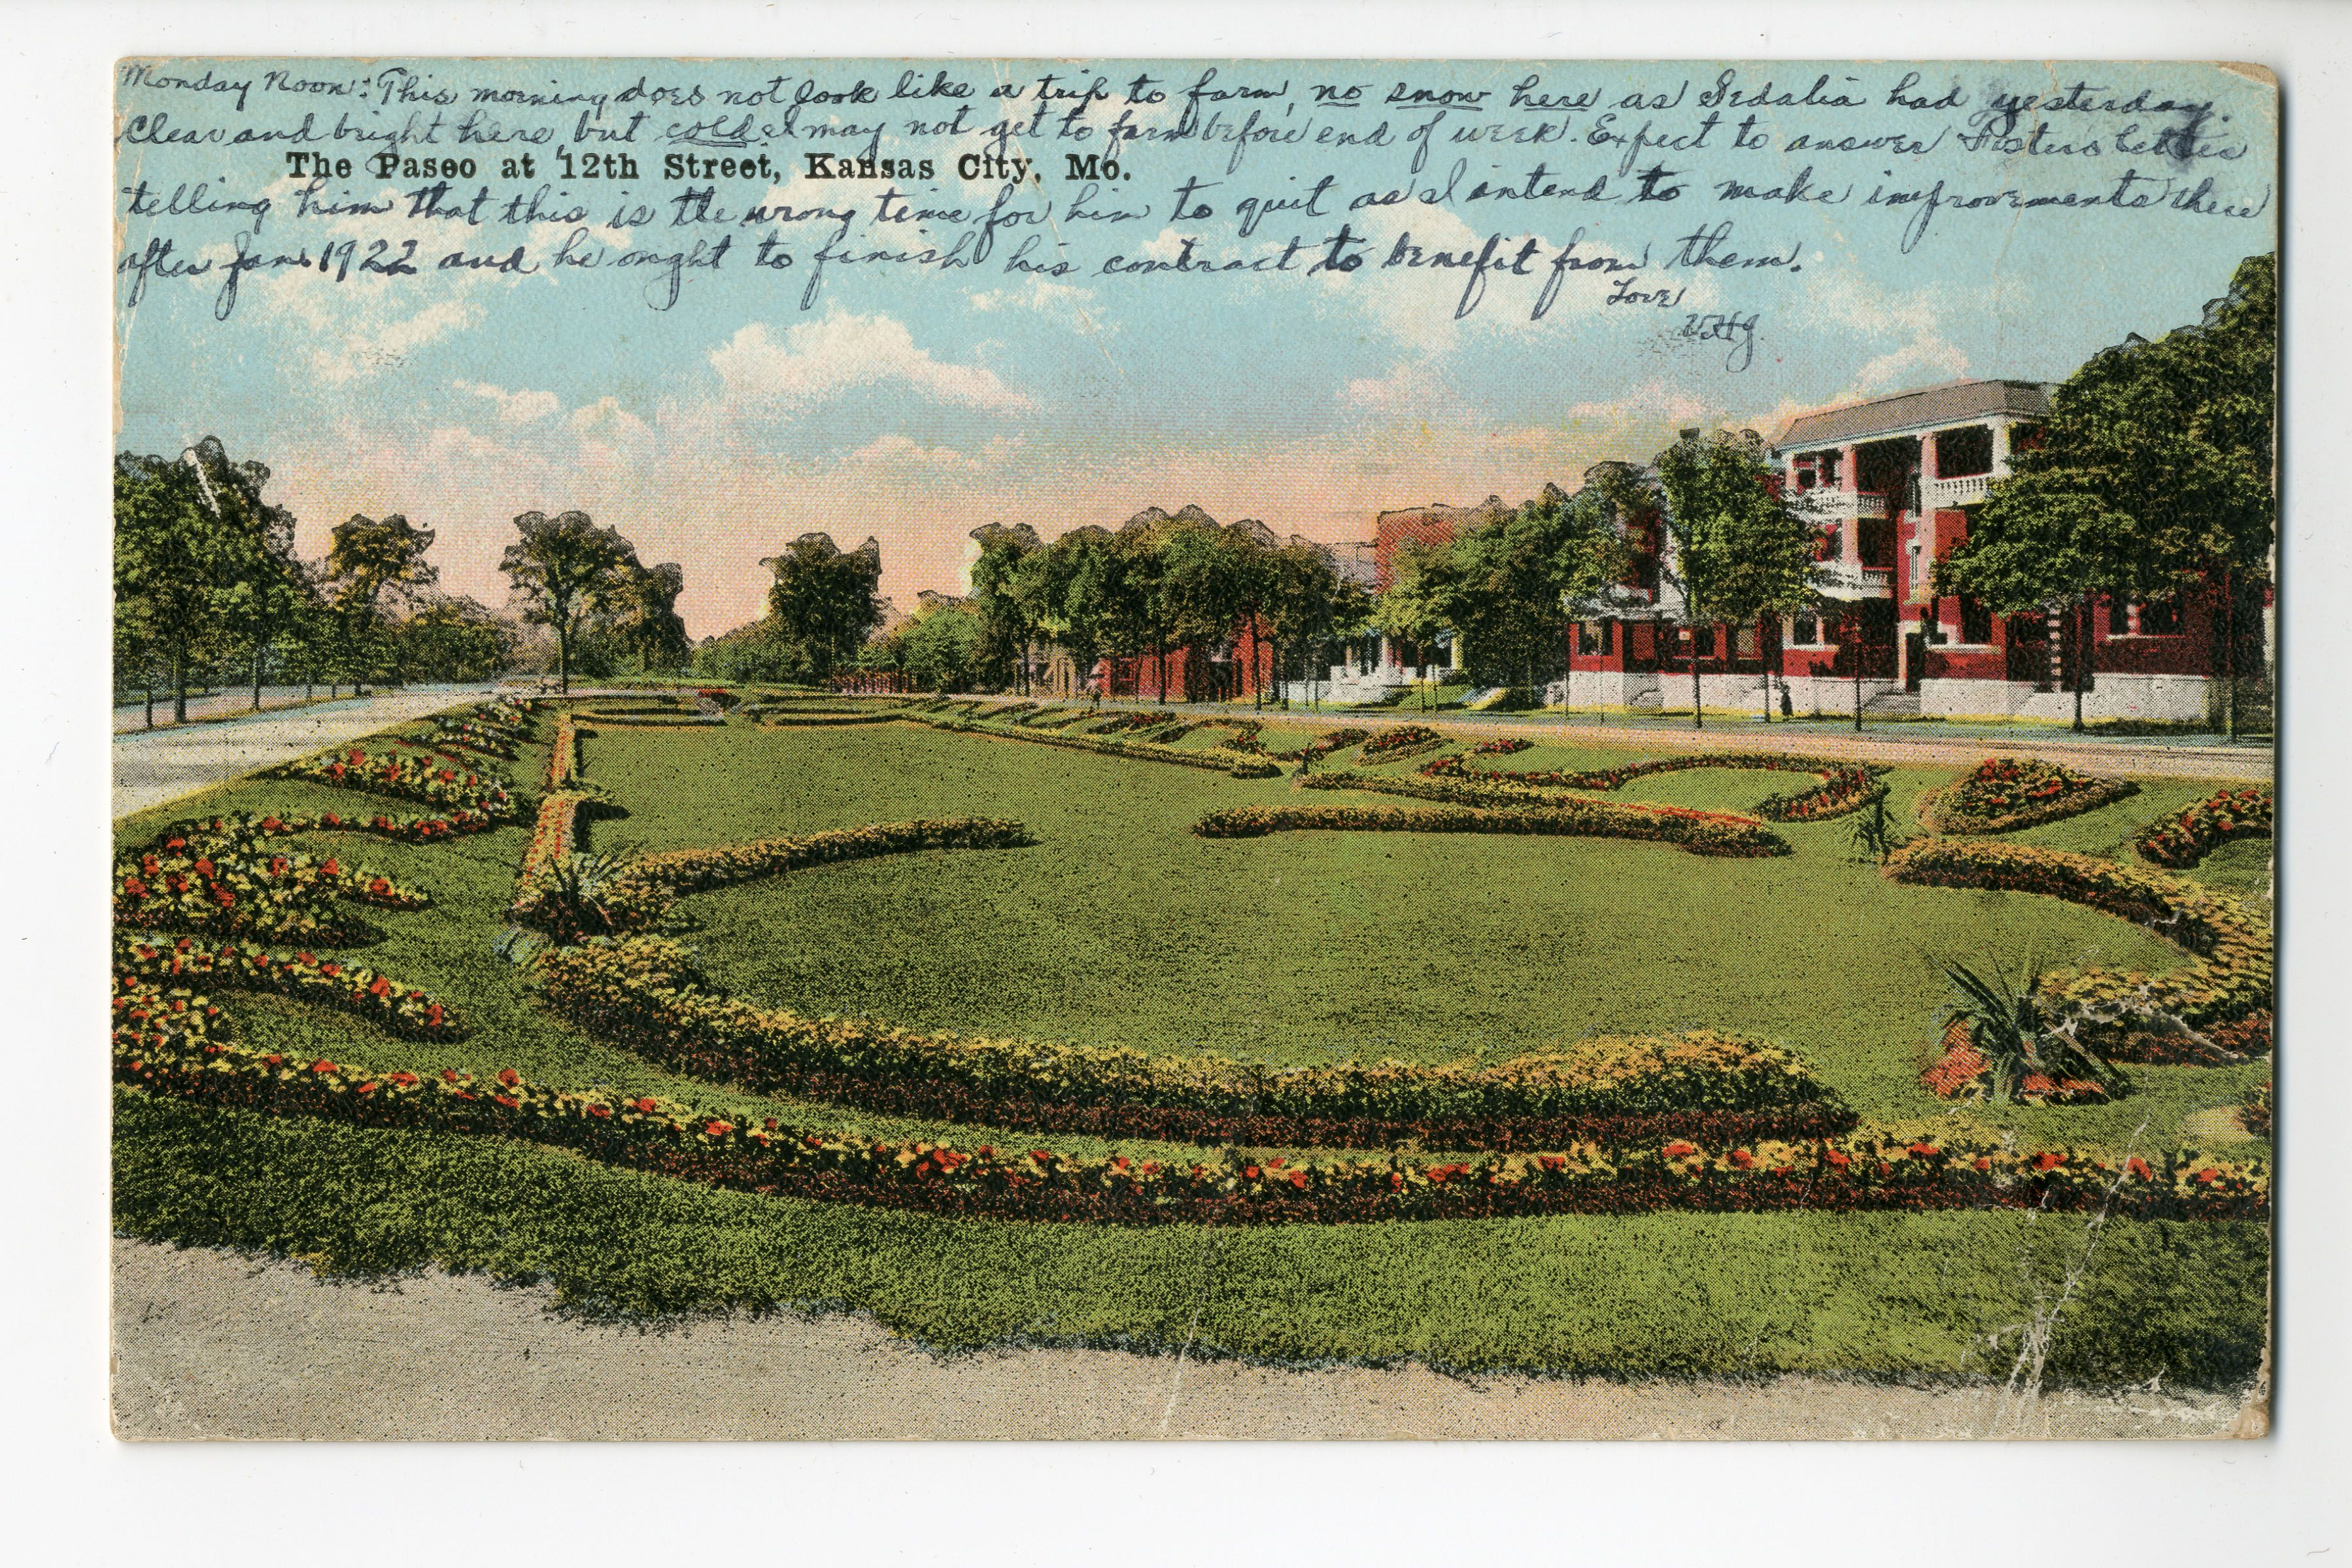 Postcard Showing The Sunken Gardens On The Paseo In Kansas City